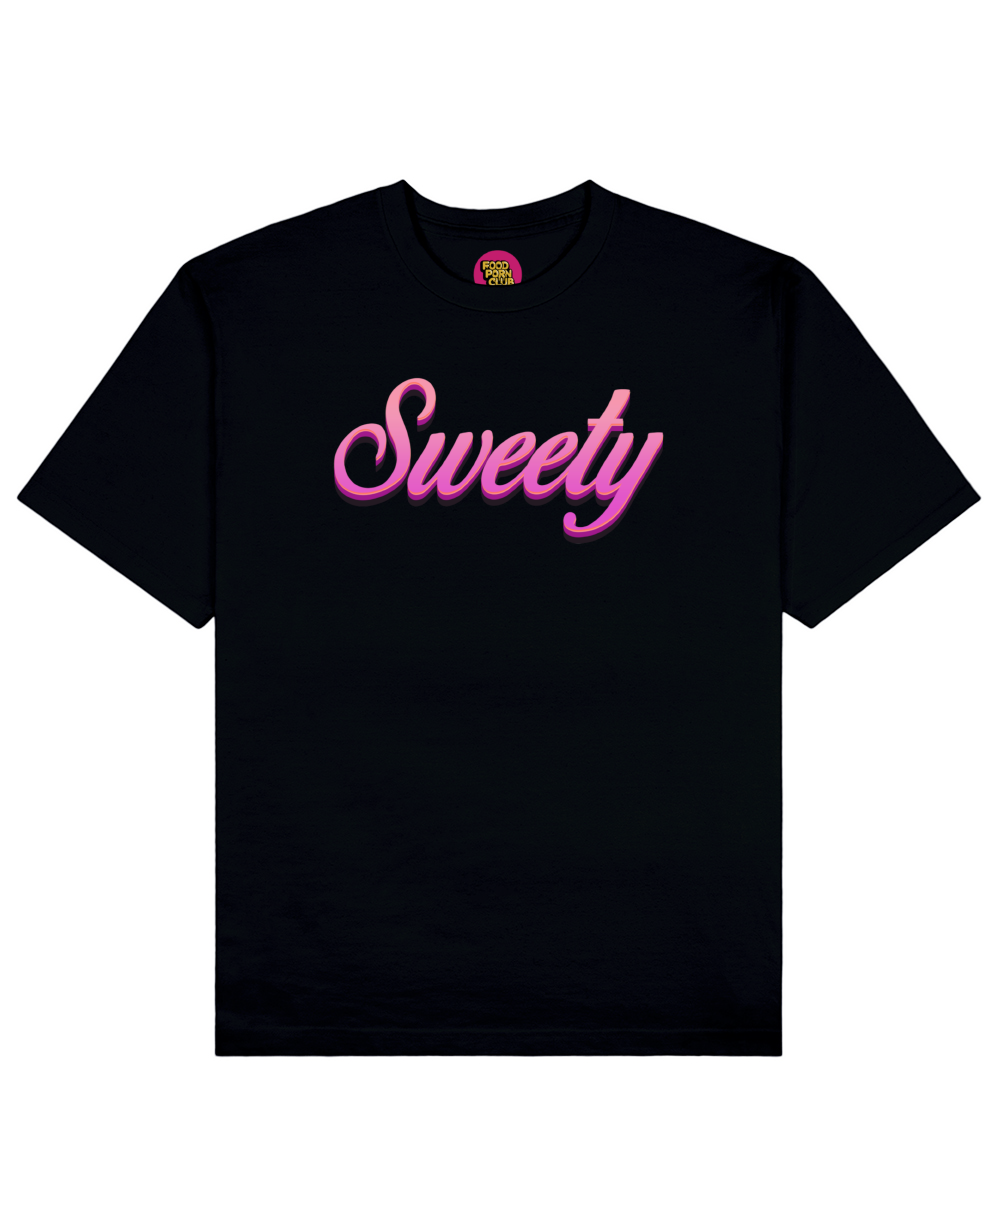 Sweety Print T-Shirt in Black - T-Shirts - FOOD PORN CLUB - BRANMA